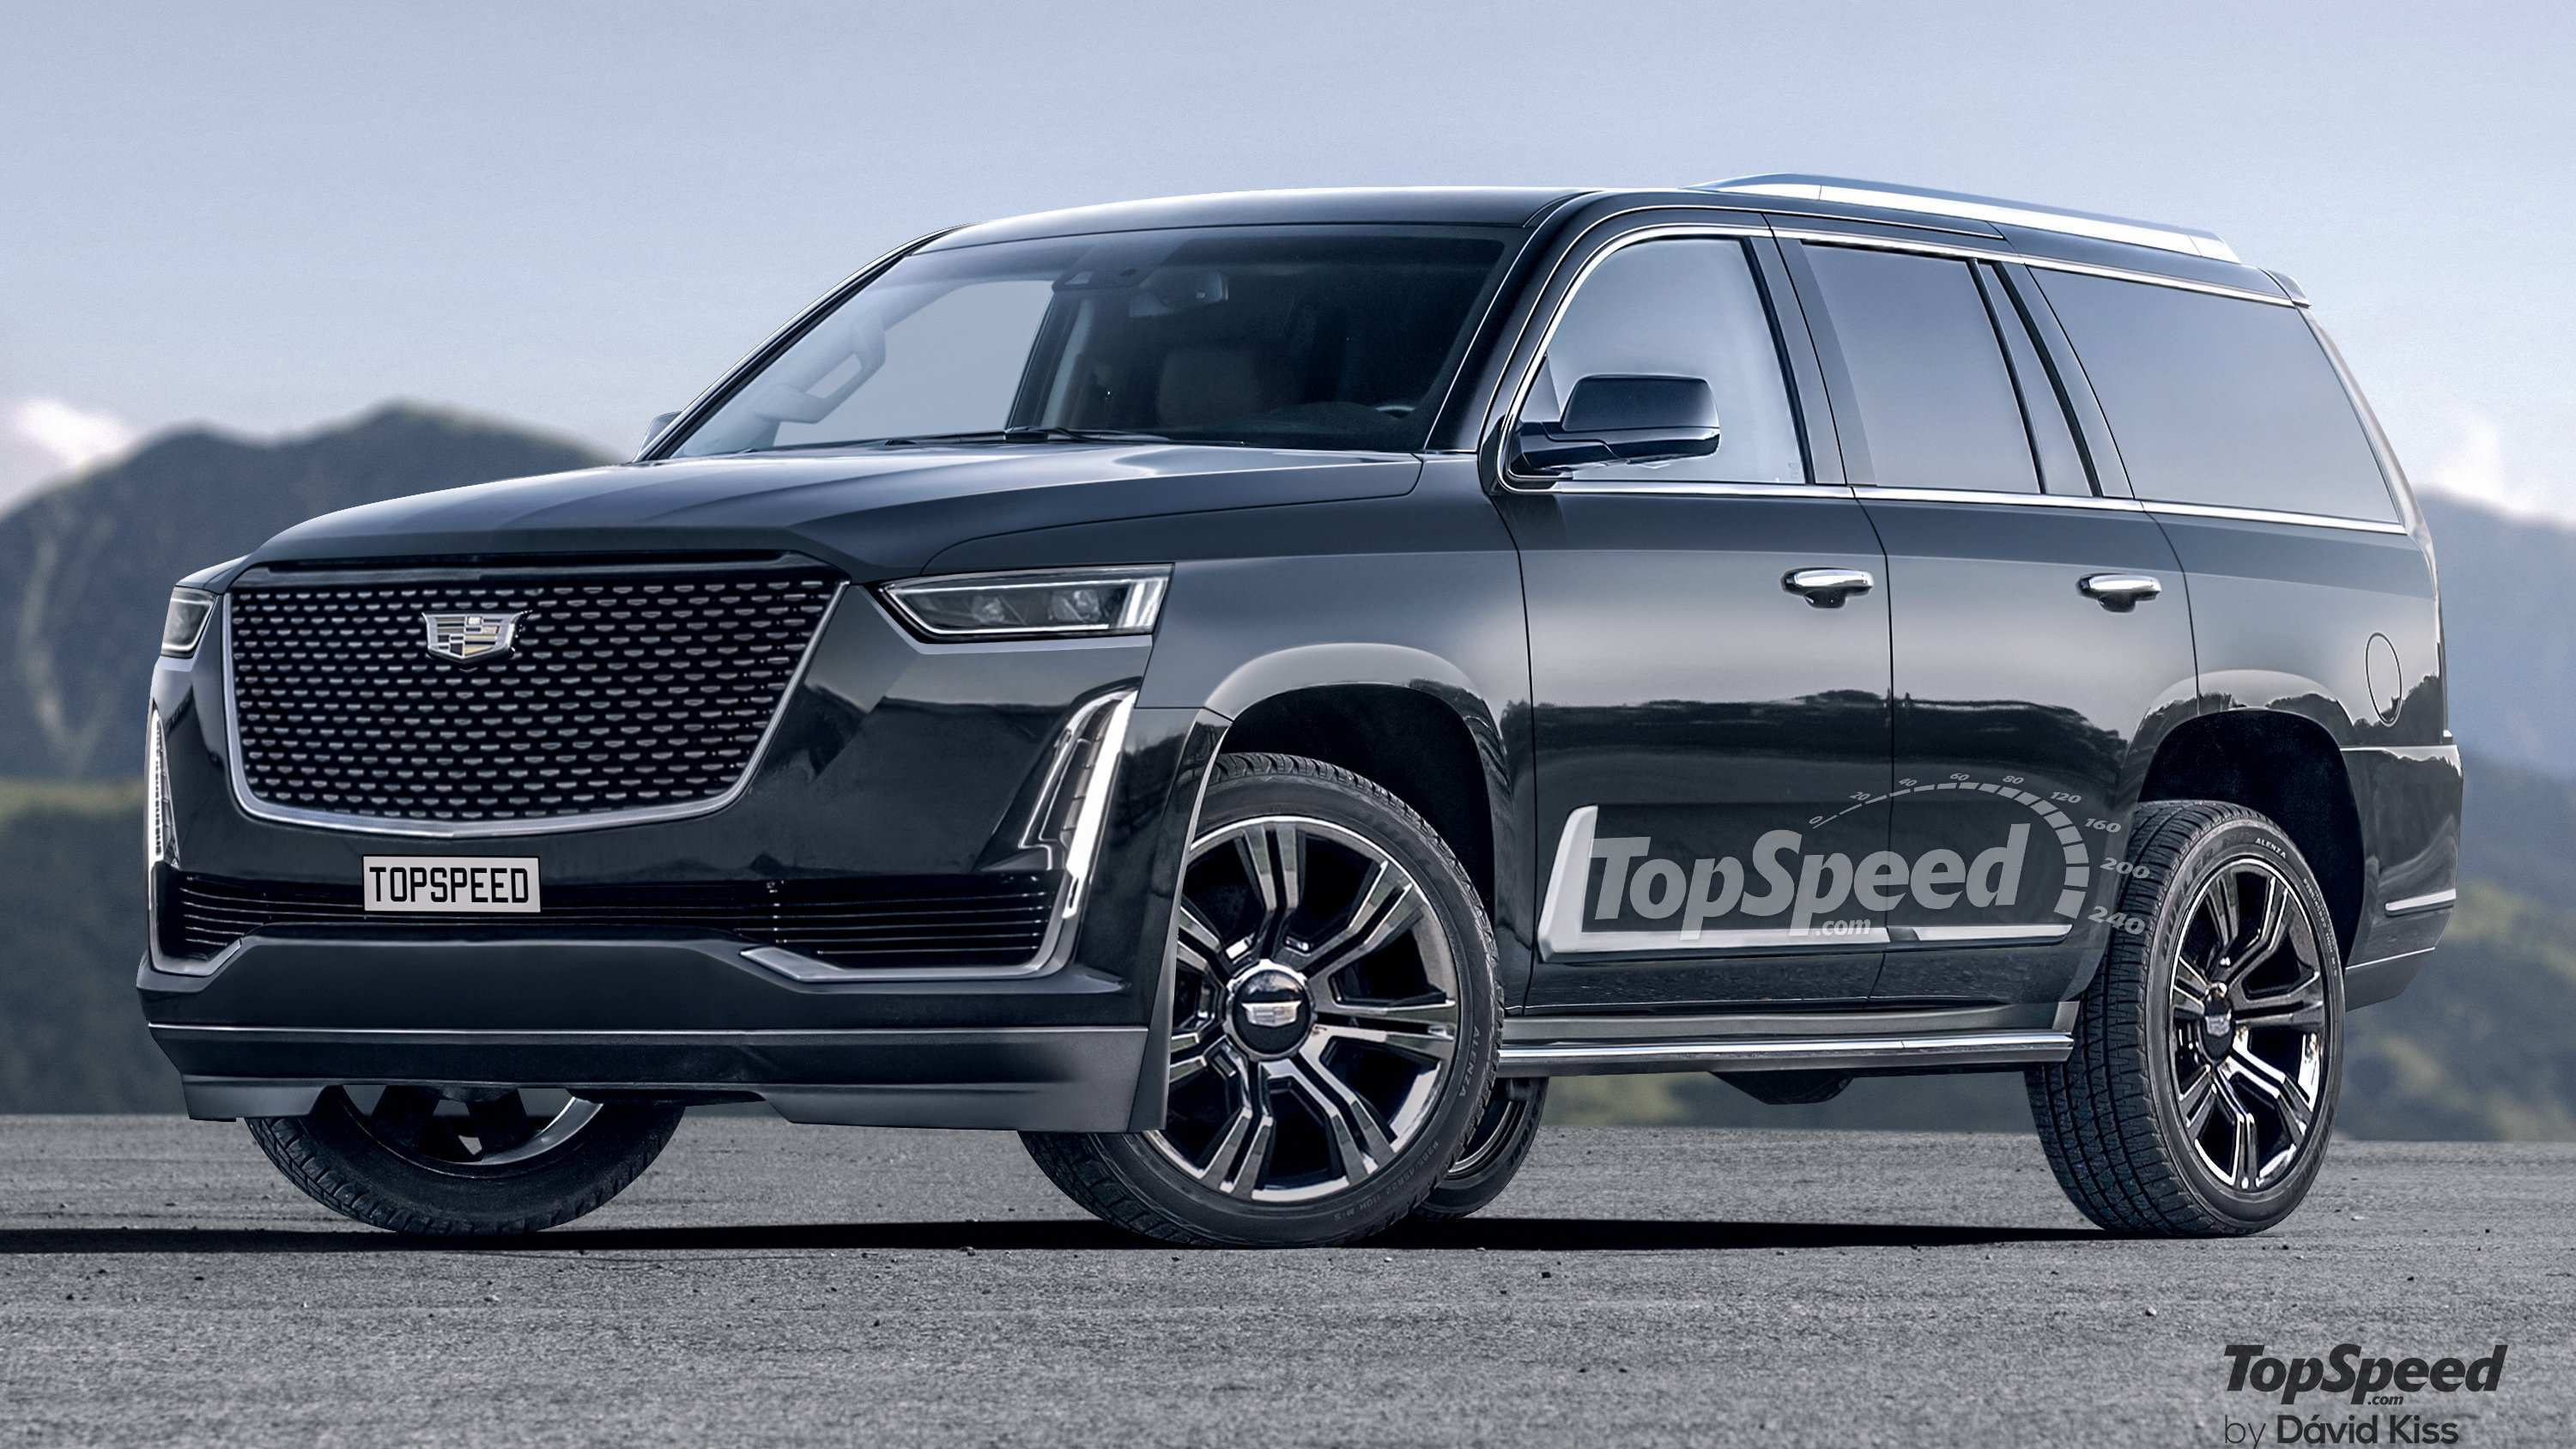 90 A When Does The 2020 Cadillac Escalade Come Out Review